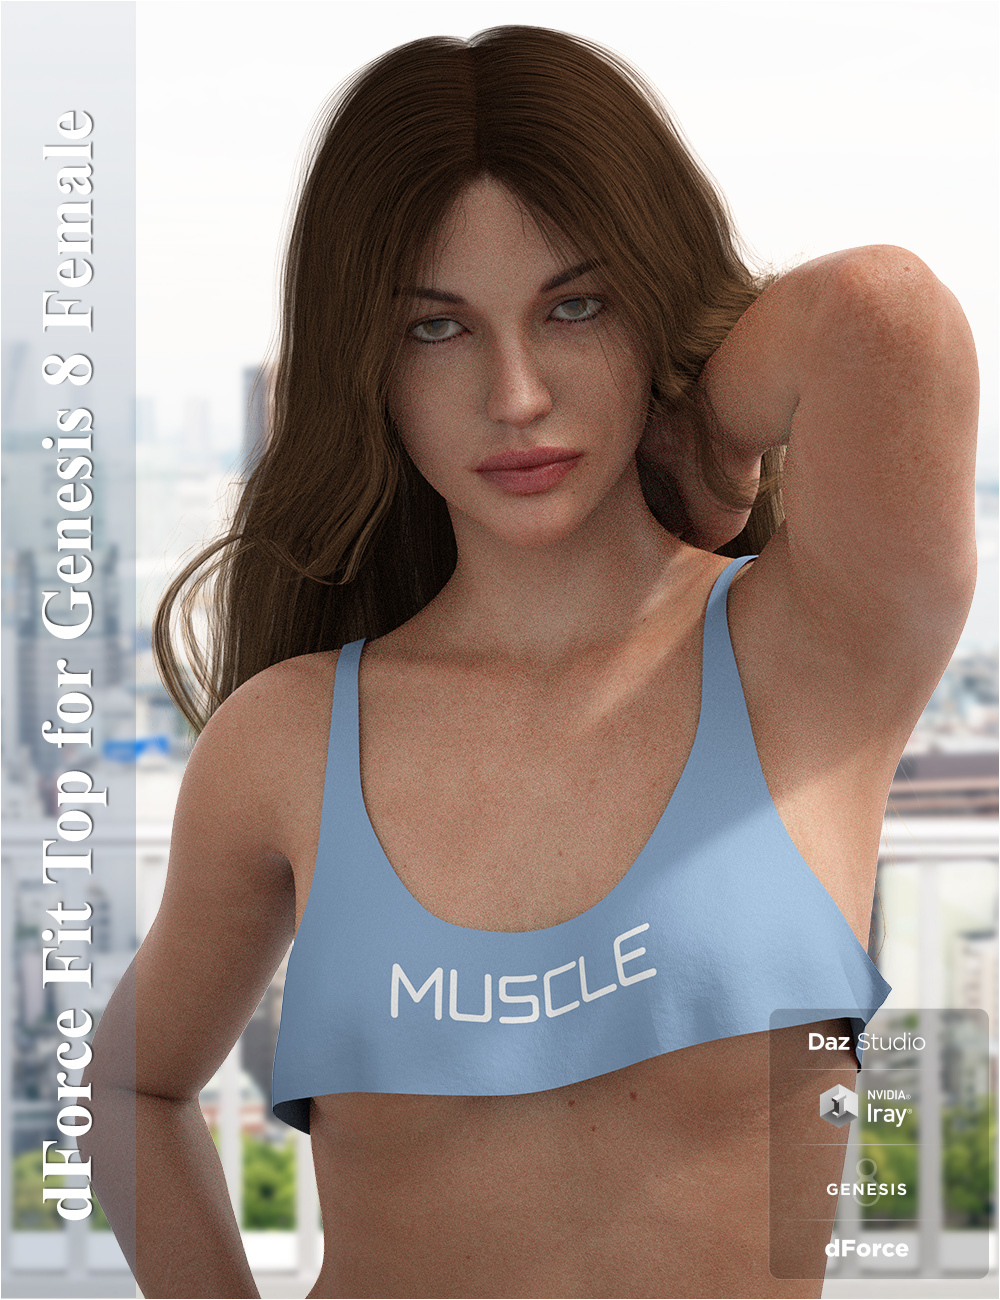 dForce Fit Top for Genesis 8 Female by Imaginary3D